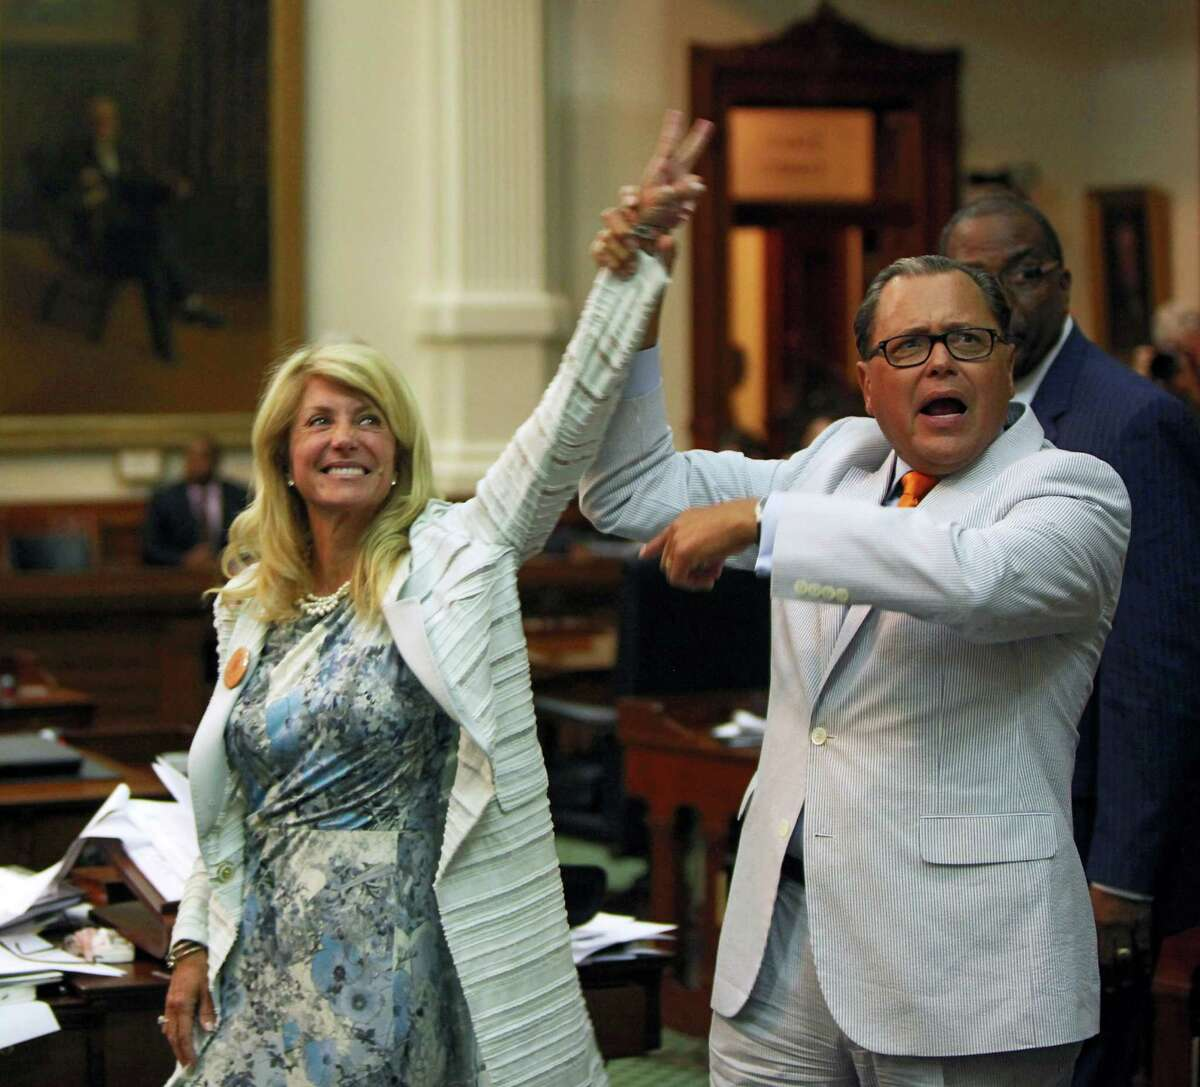 Senate Democrats Wendy Davis and Jose Rodriguez celebrate last week at the Capitol after the filibuster led by Davis defeated the GOP's anti-abortion bill.